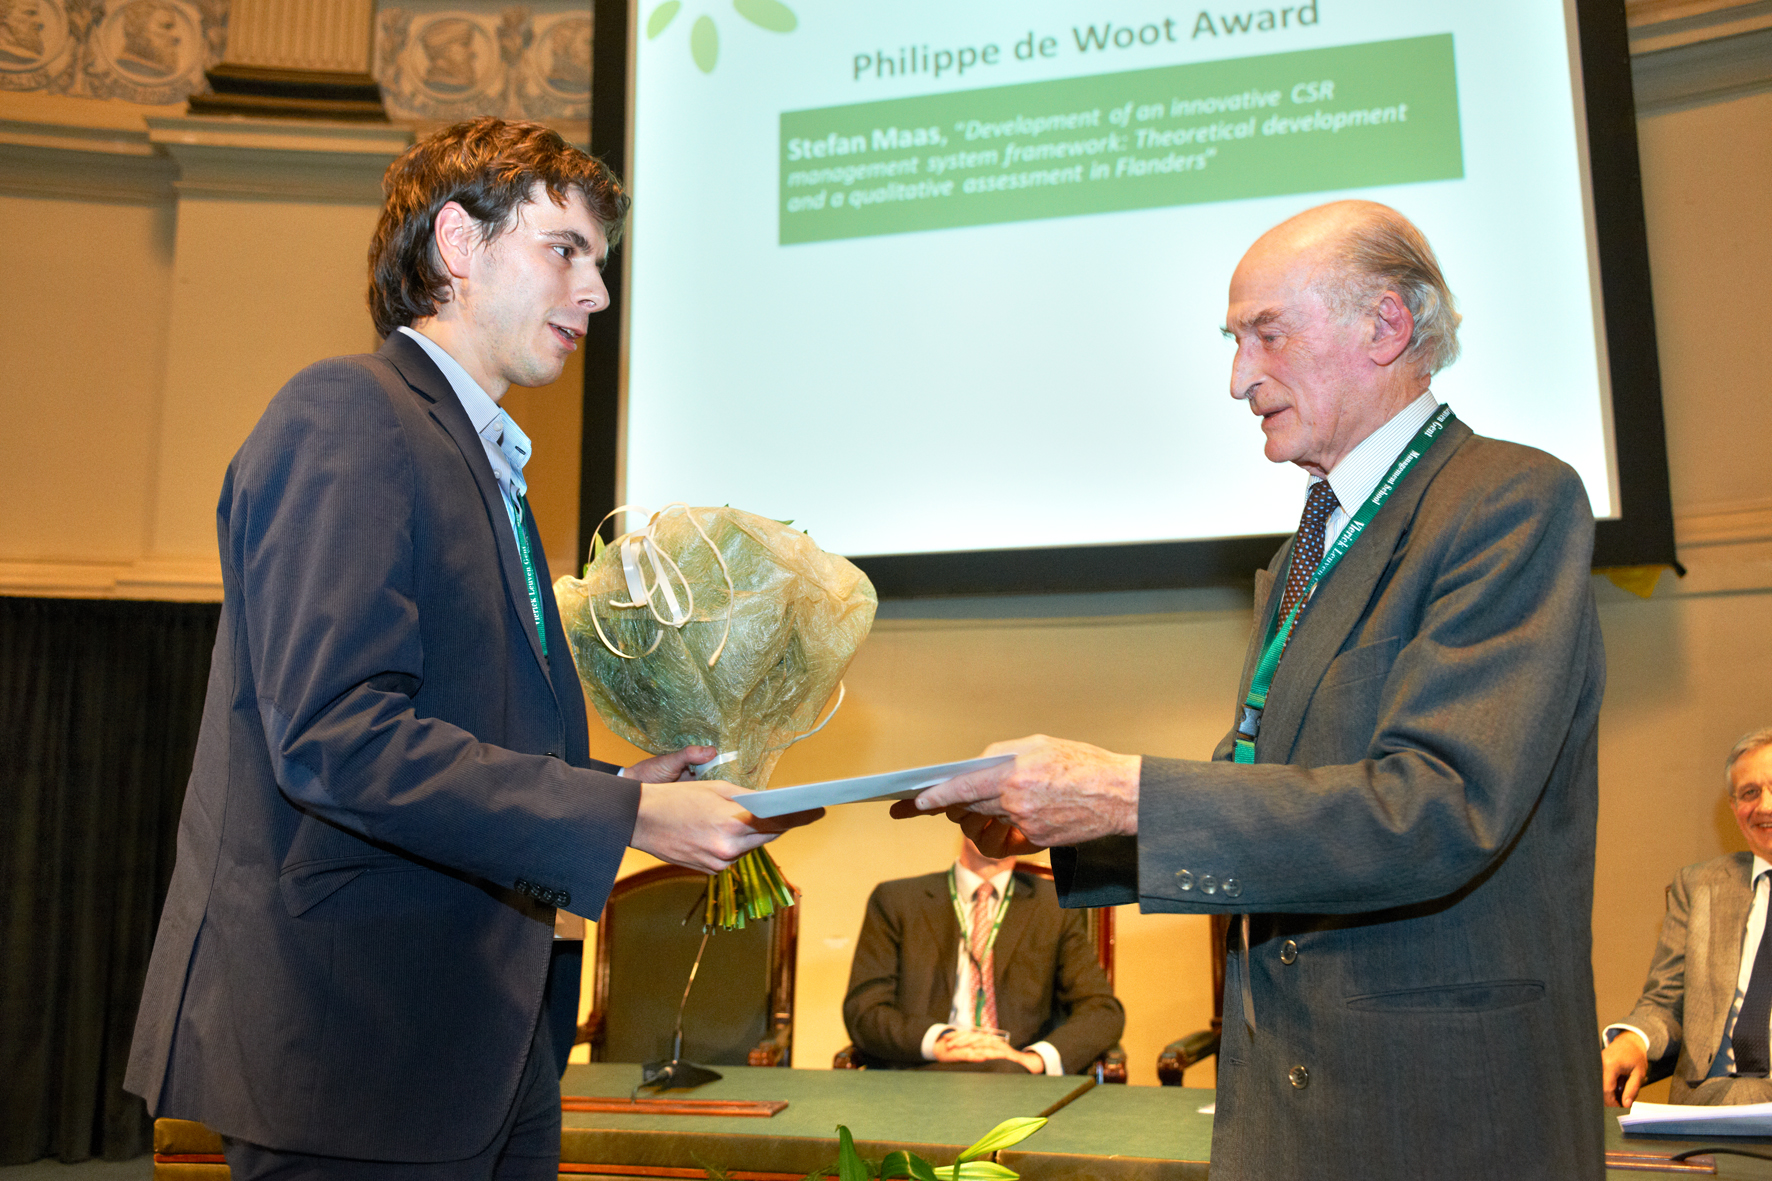 Philippe de Woot giving Stefan Maas the award for the best CSR thesis 2012